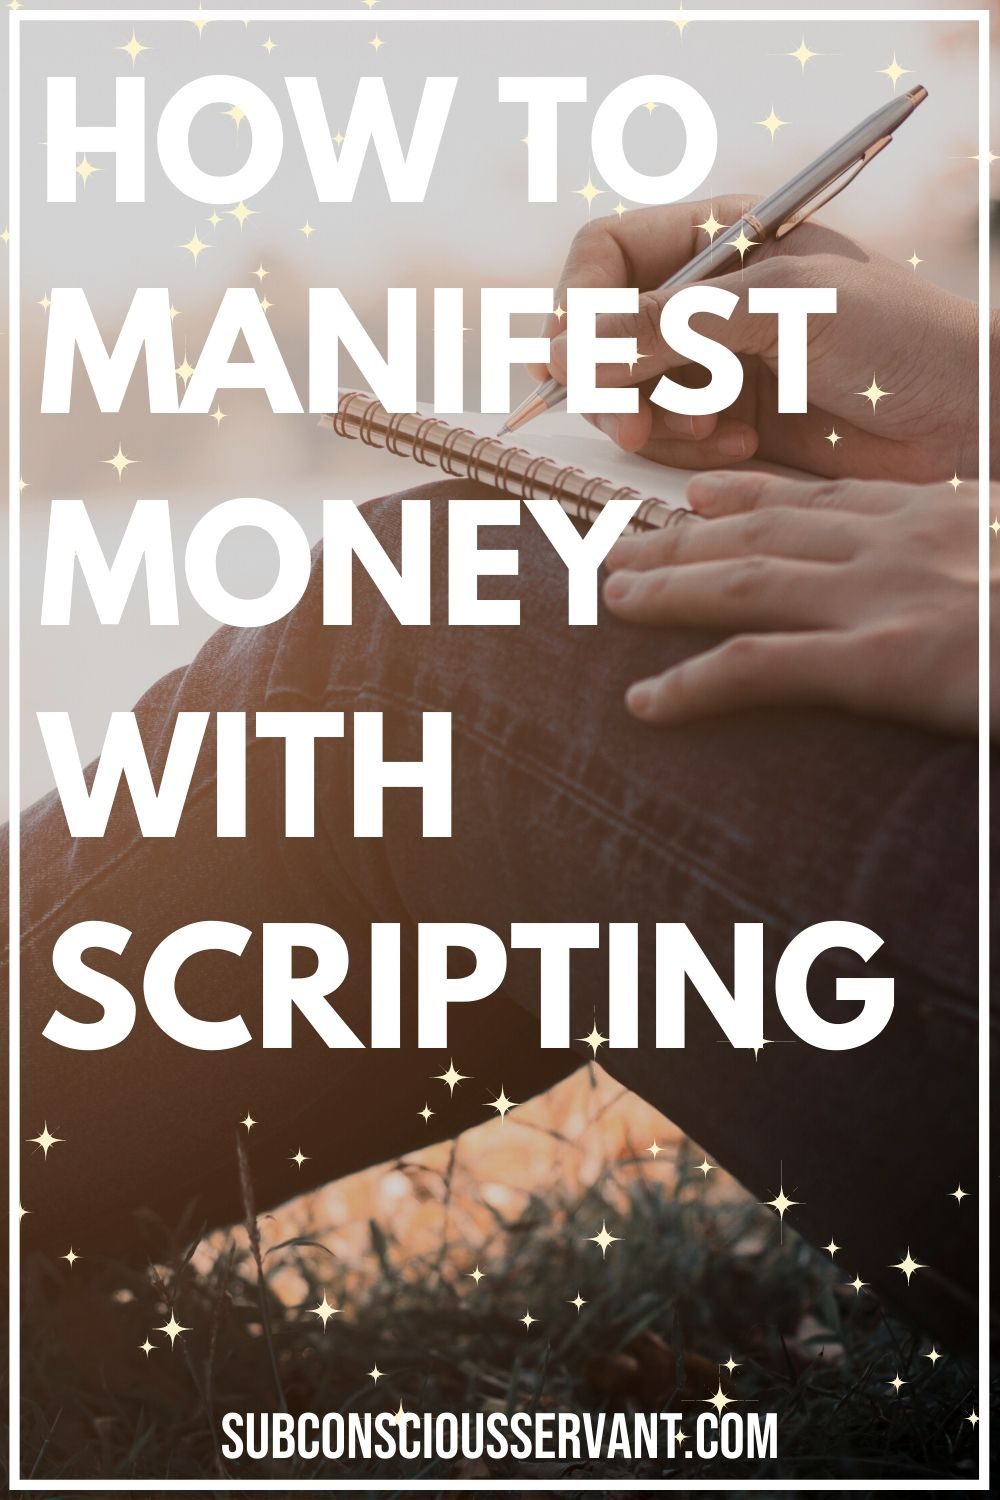 How To Manifest Money With Scripting